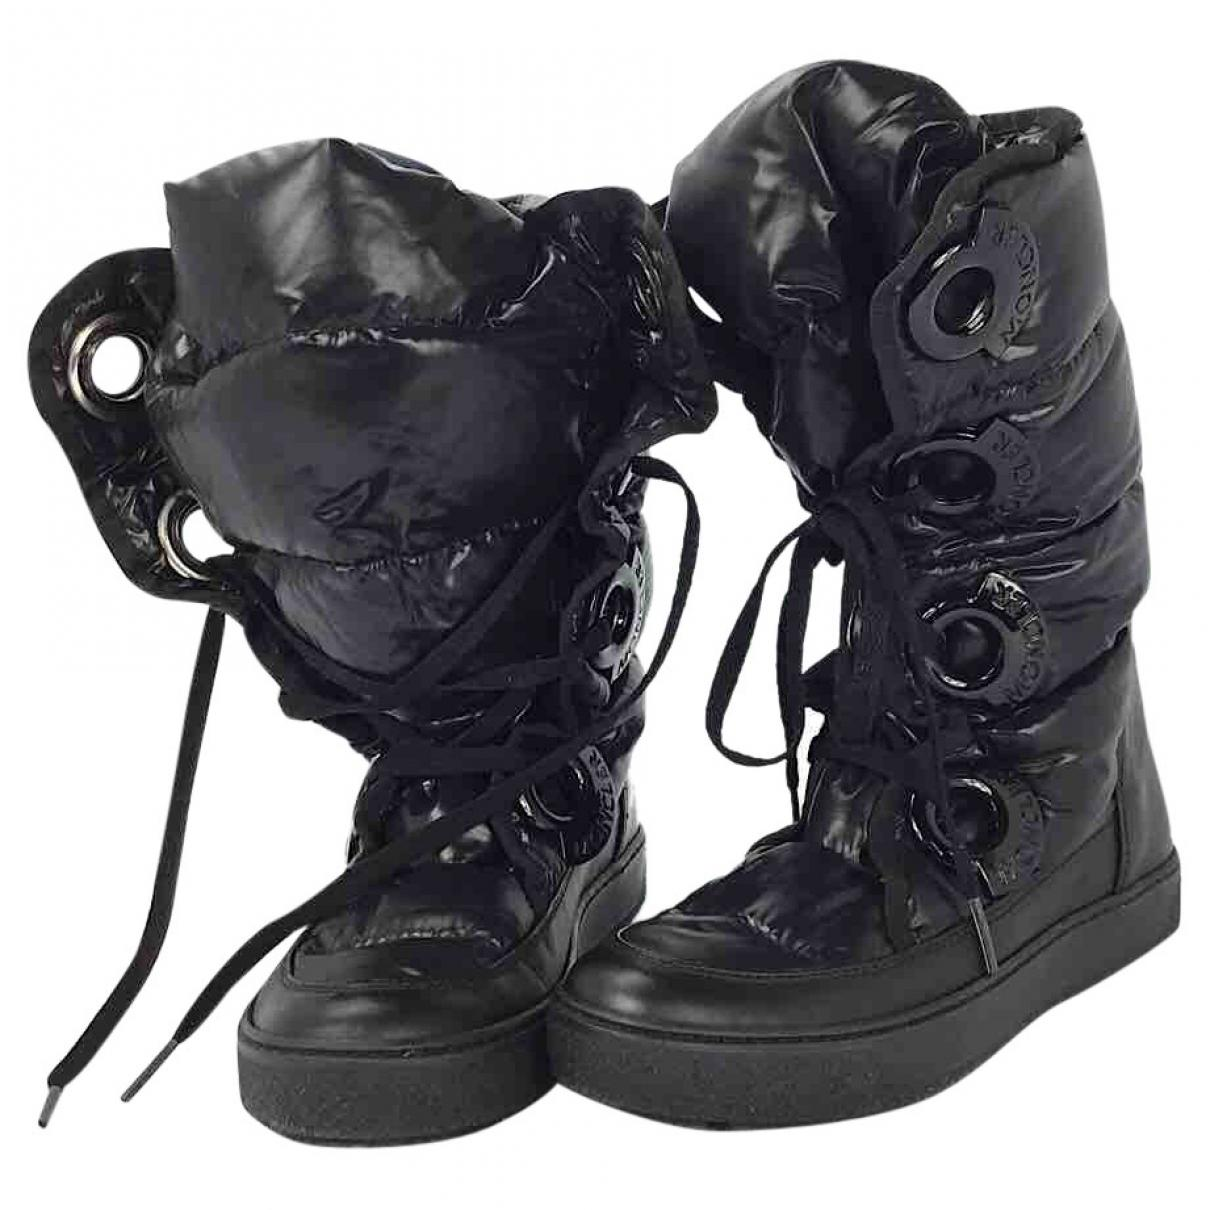 51c734e51e70 Lyst - Moncler Pre-owned Snow Boots in Black